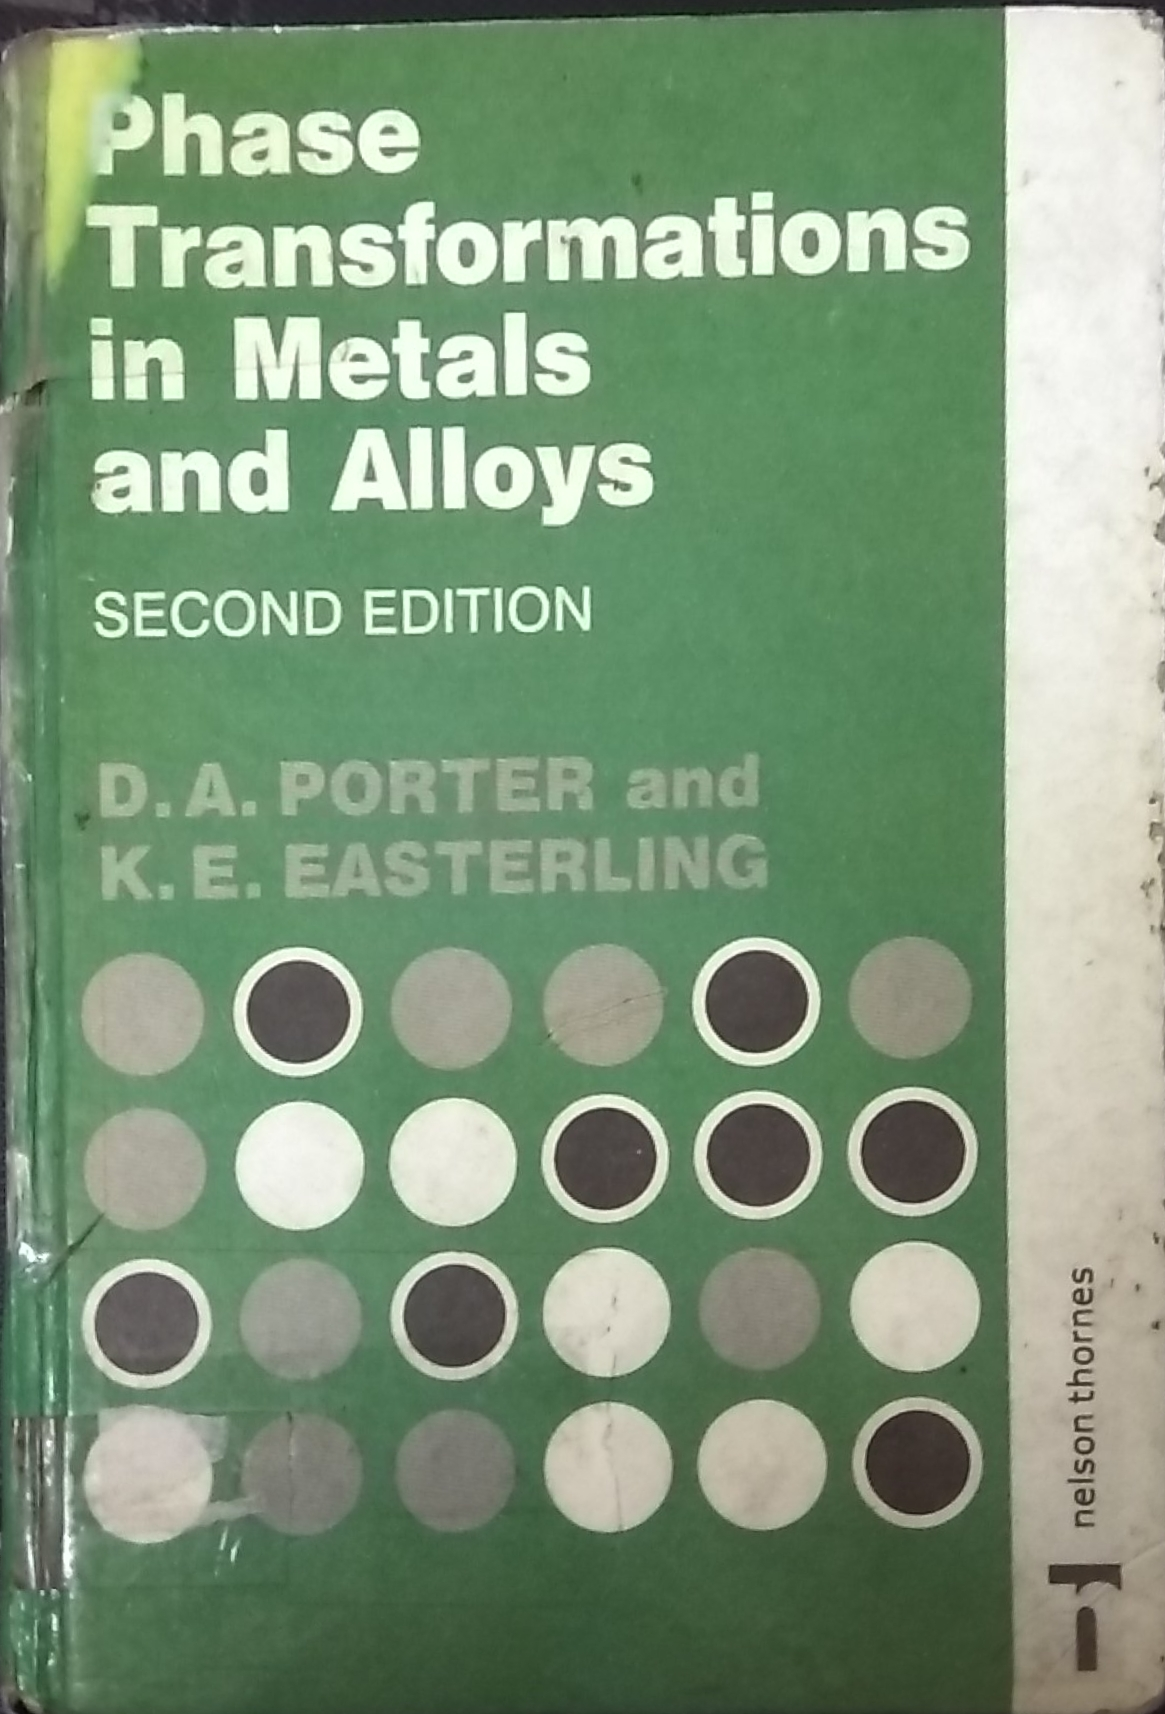 phase transformation in metals and alloys second edition